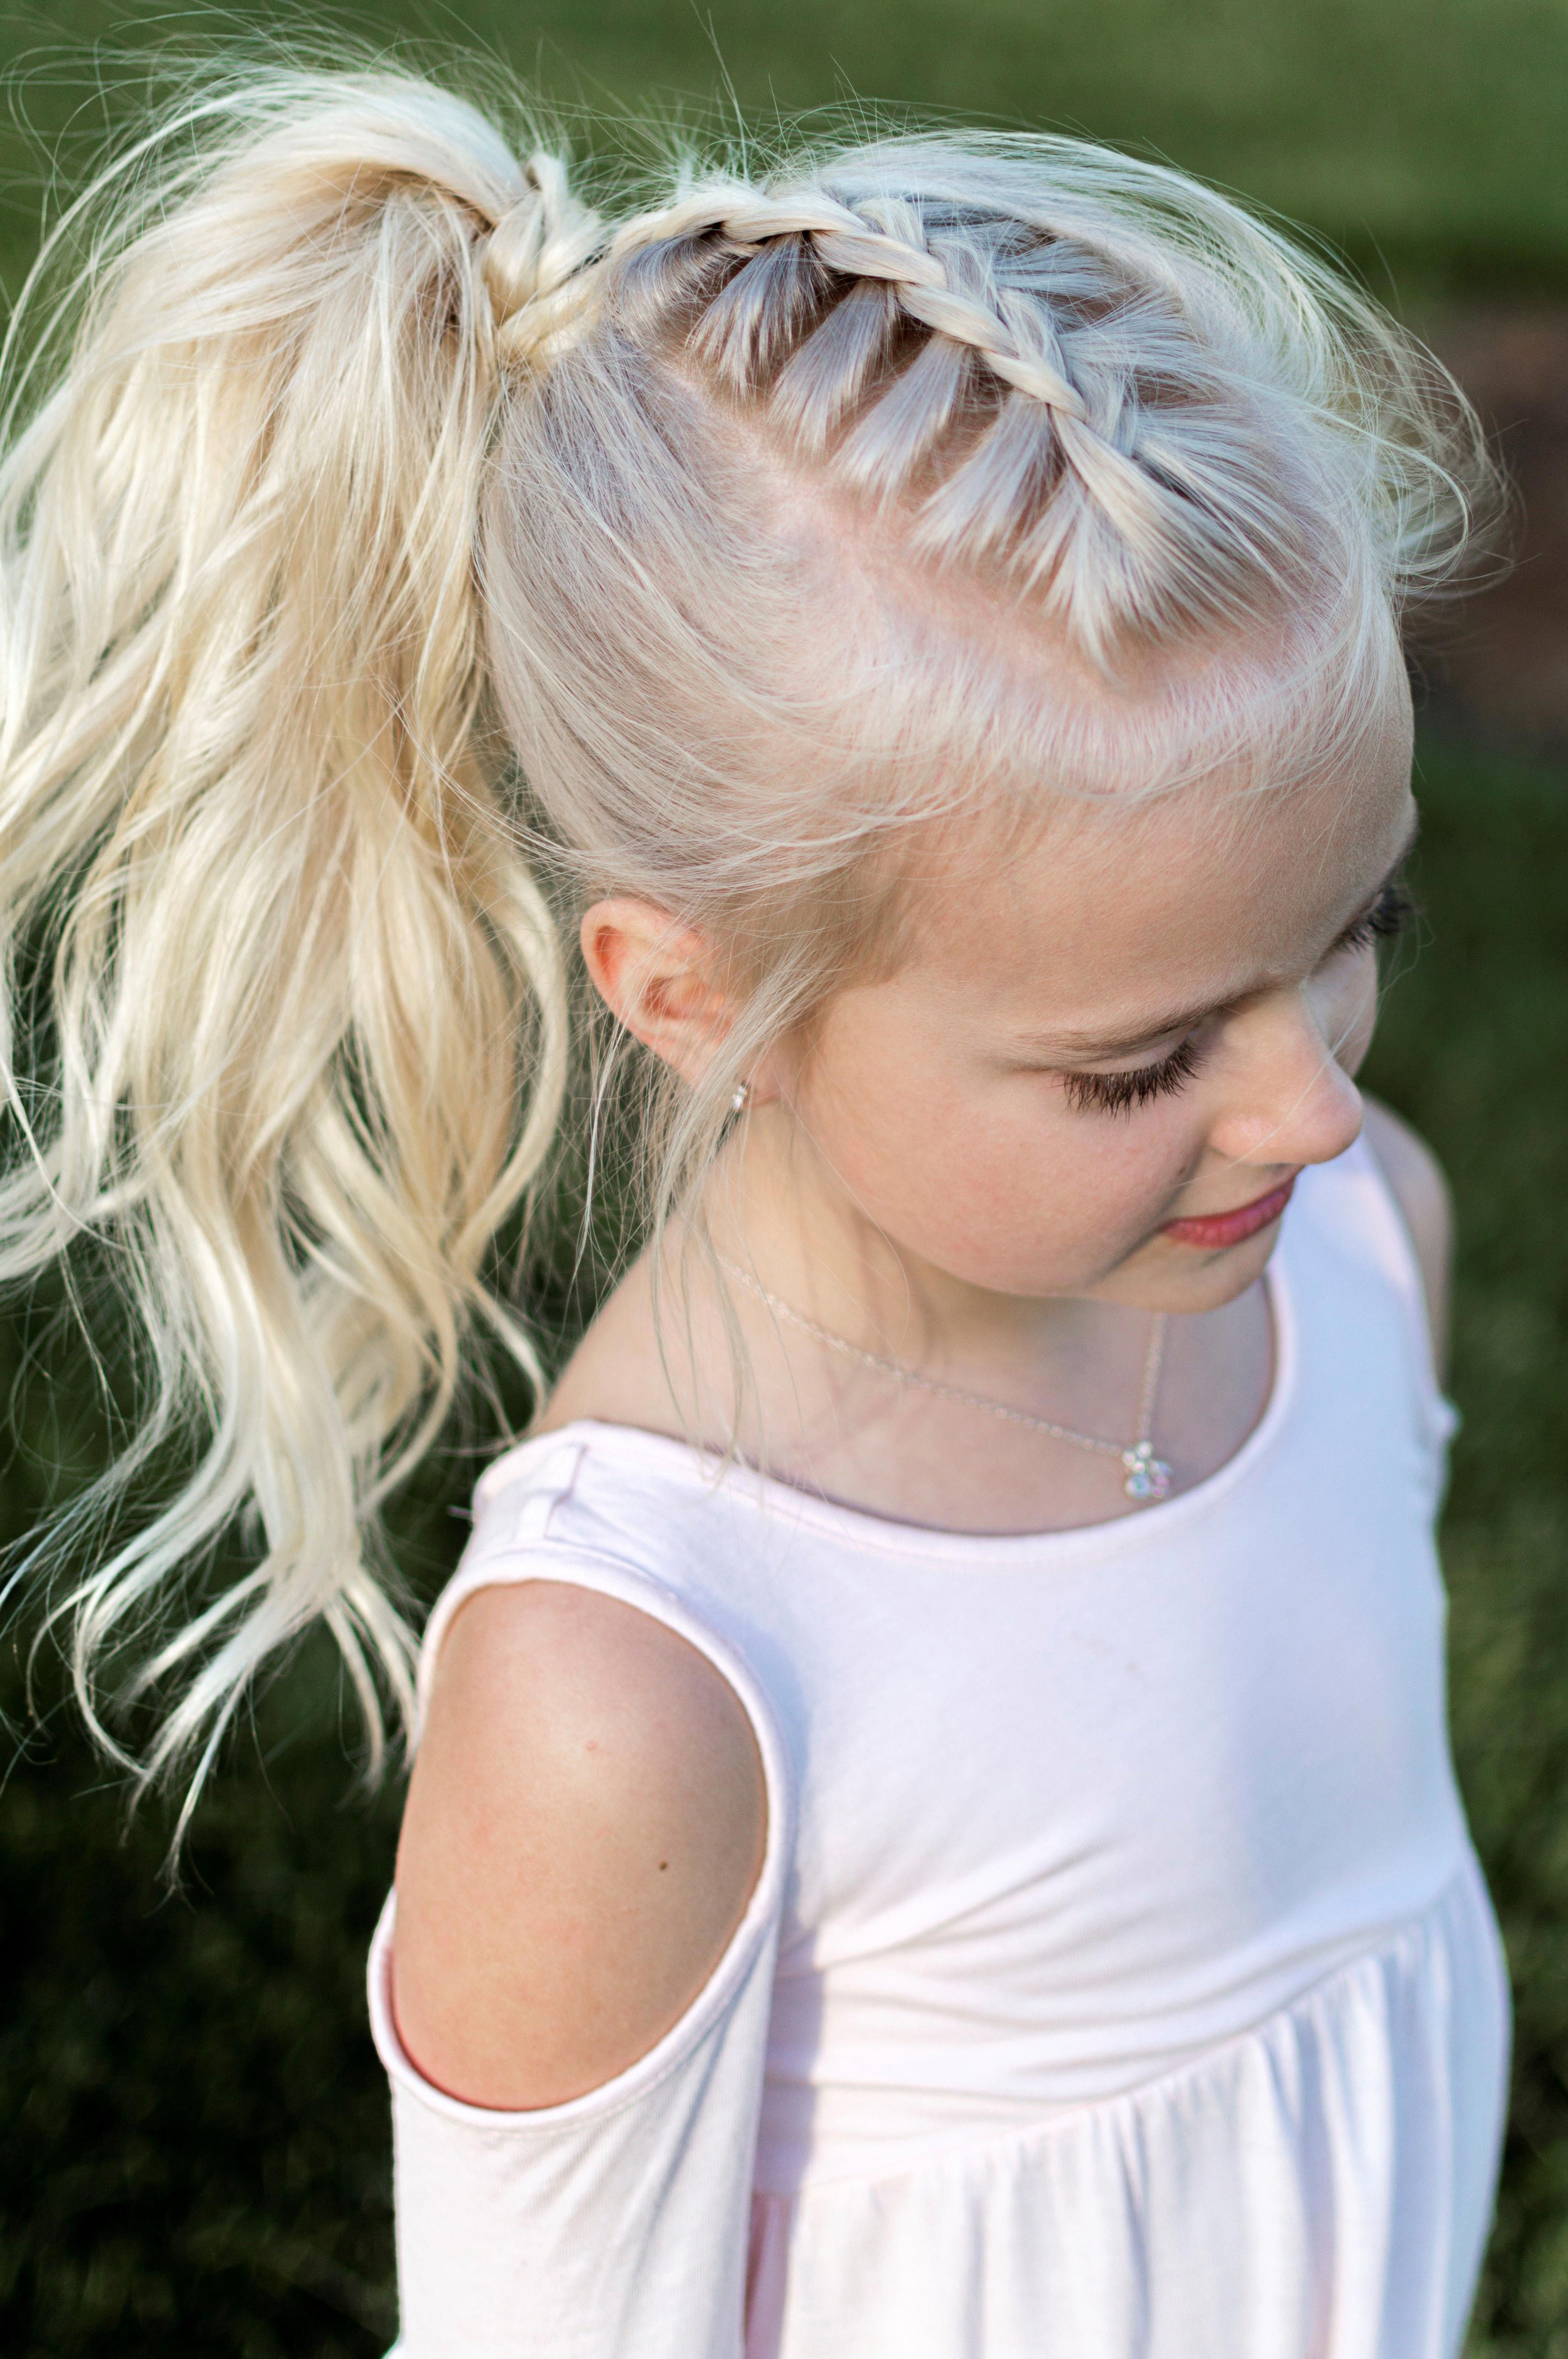 latest short haircuts | cool kid hairstyles girl | hairstyles for 7